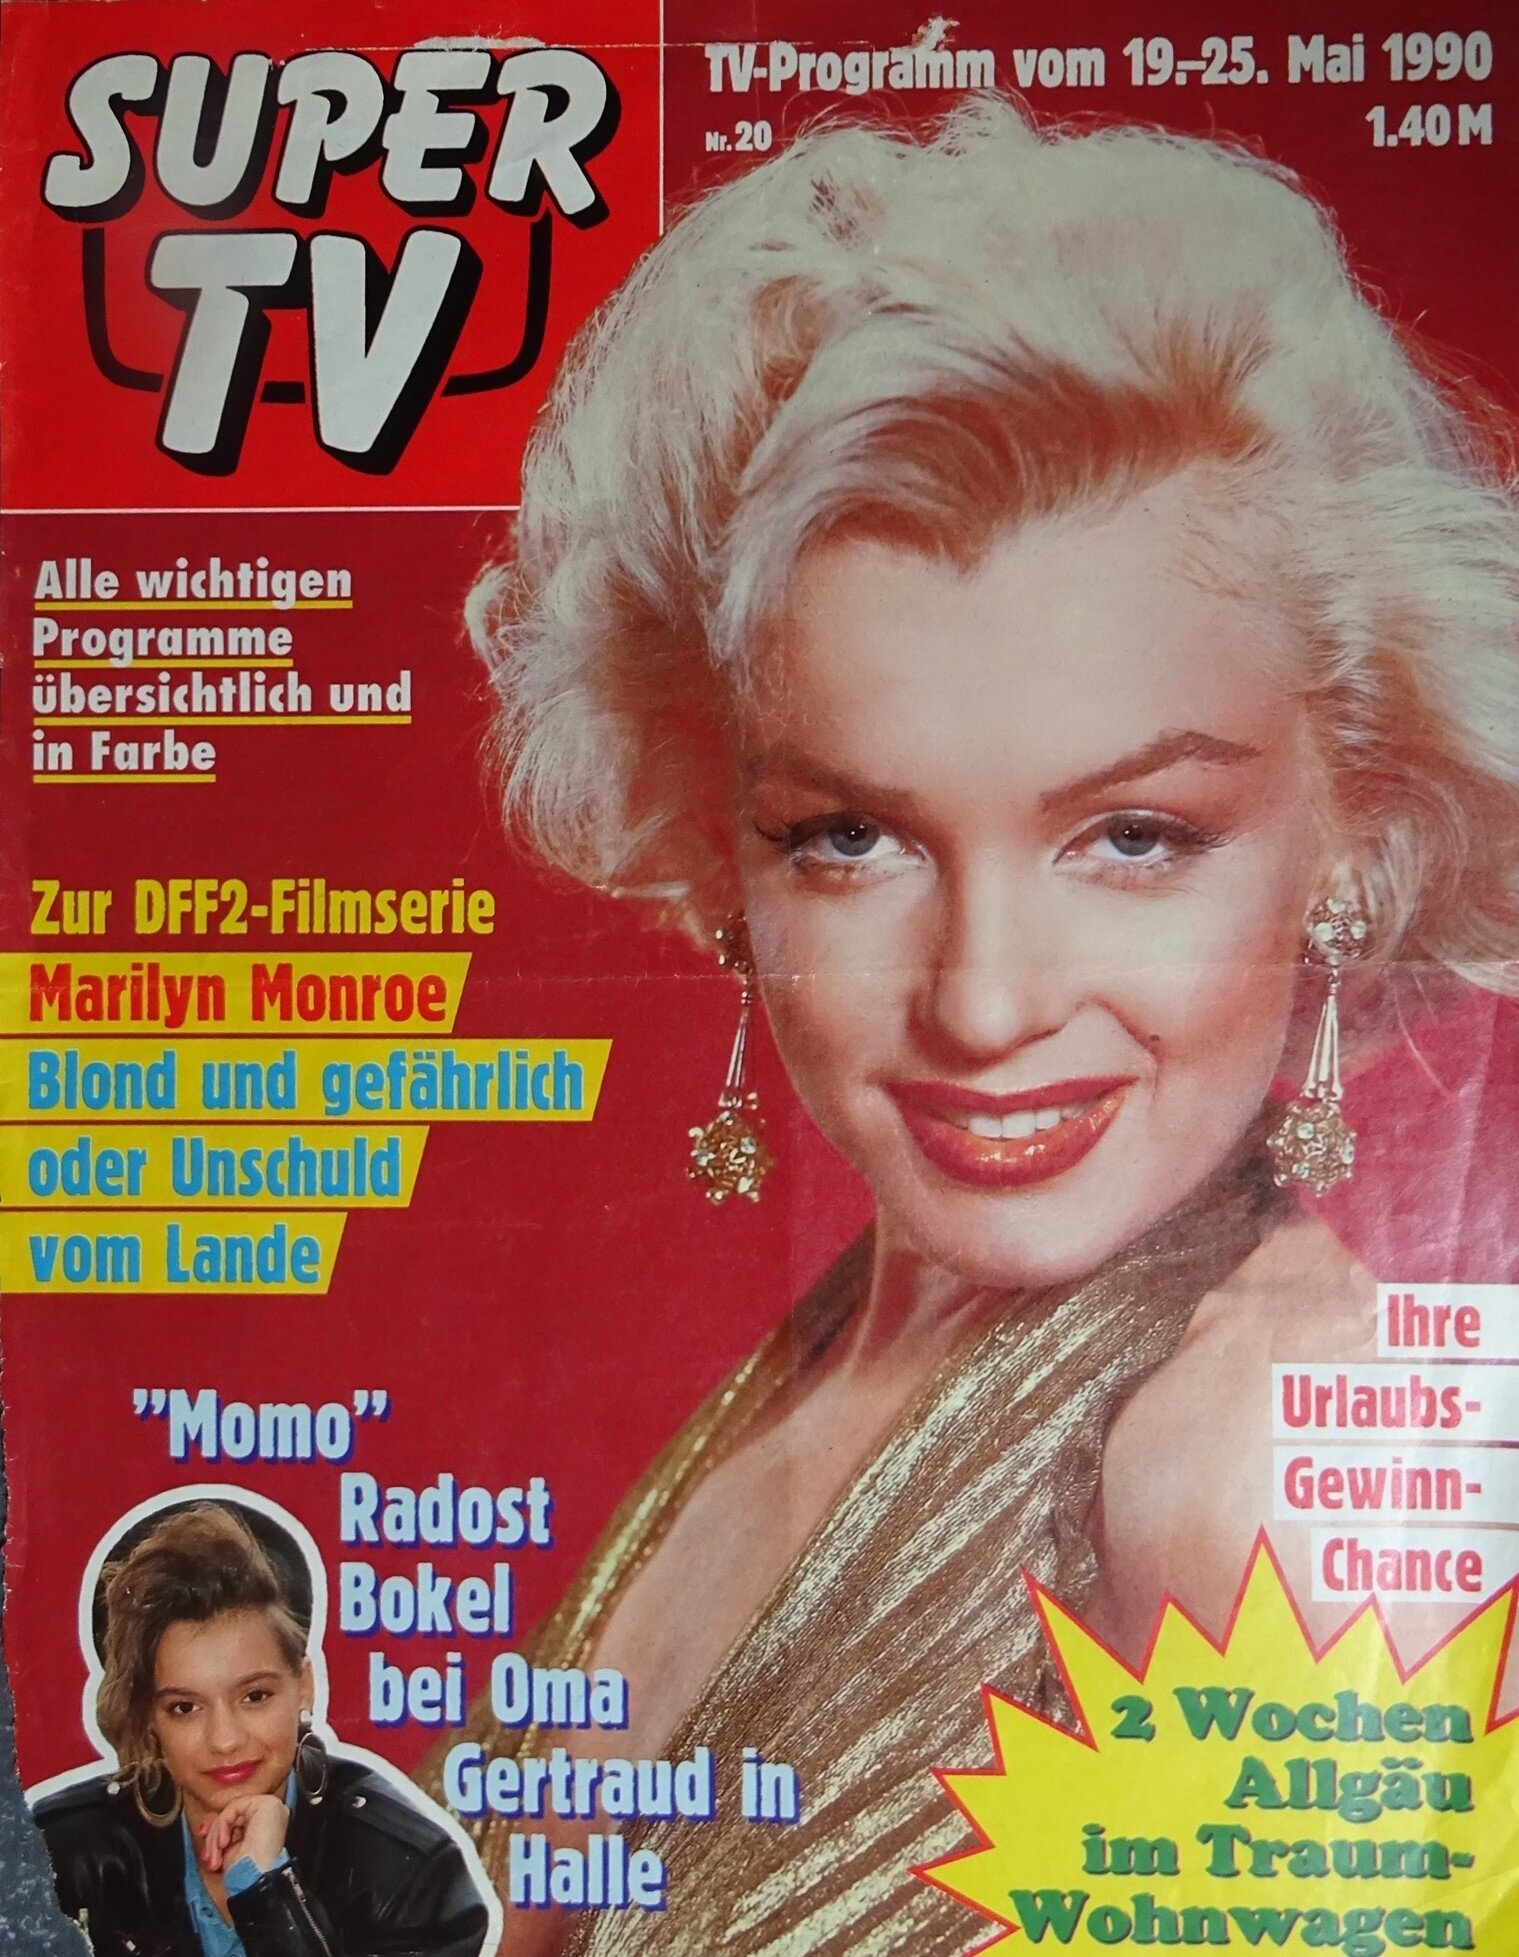 Super tv (All) 1990